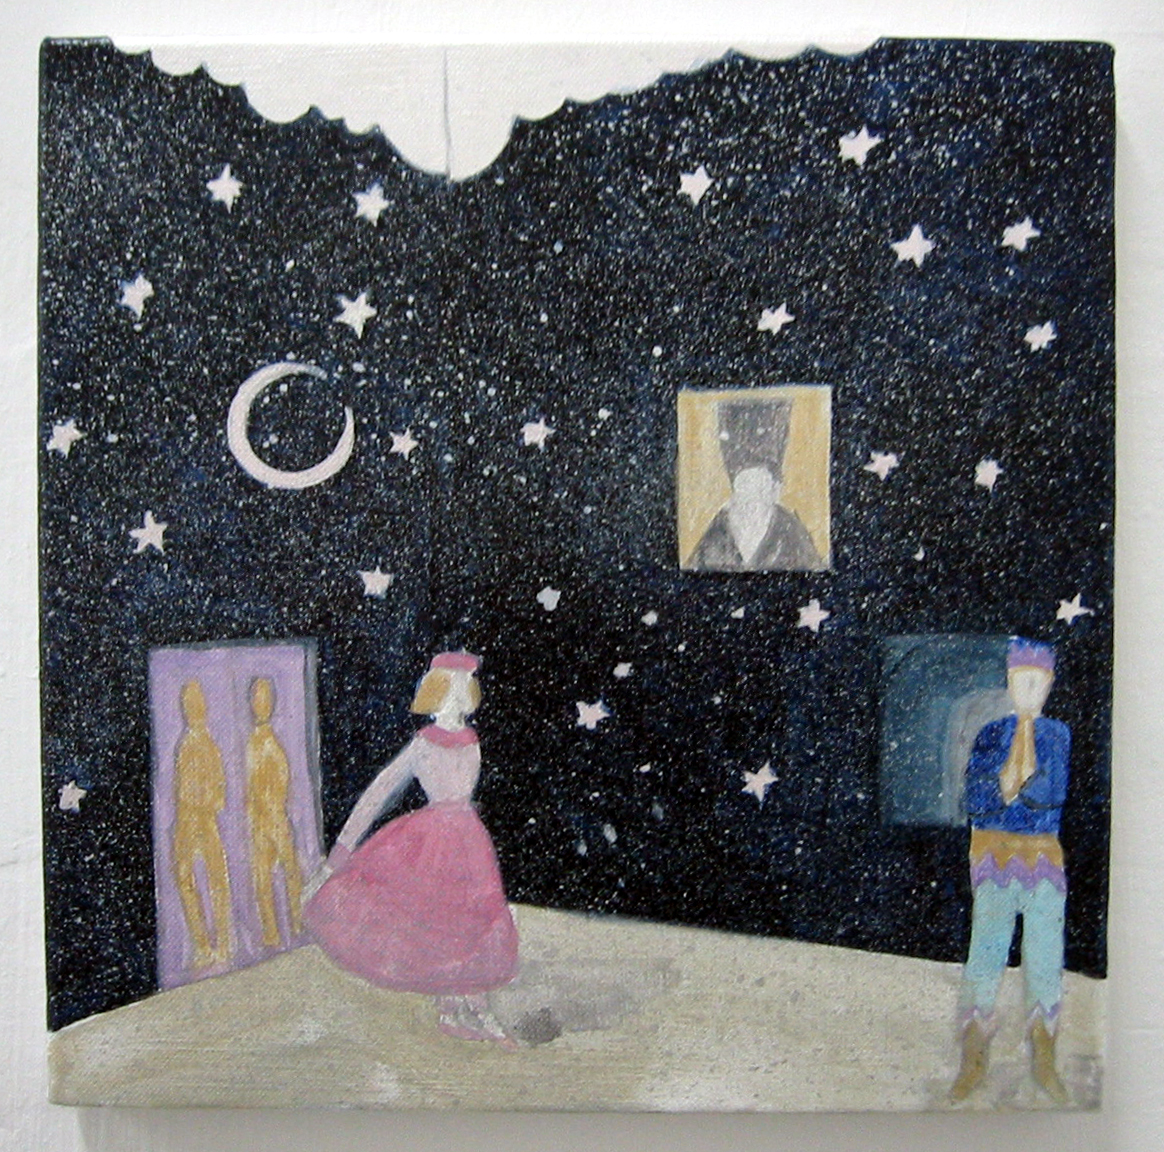 otto-knapp, room with moon and stars